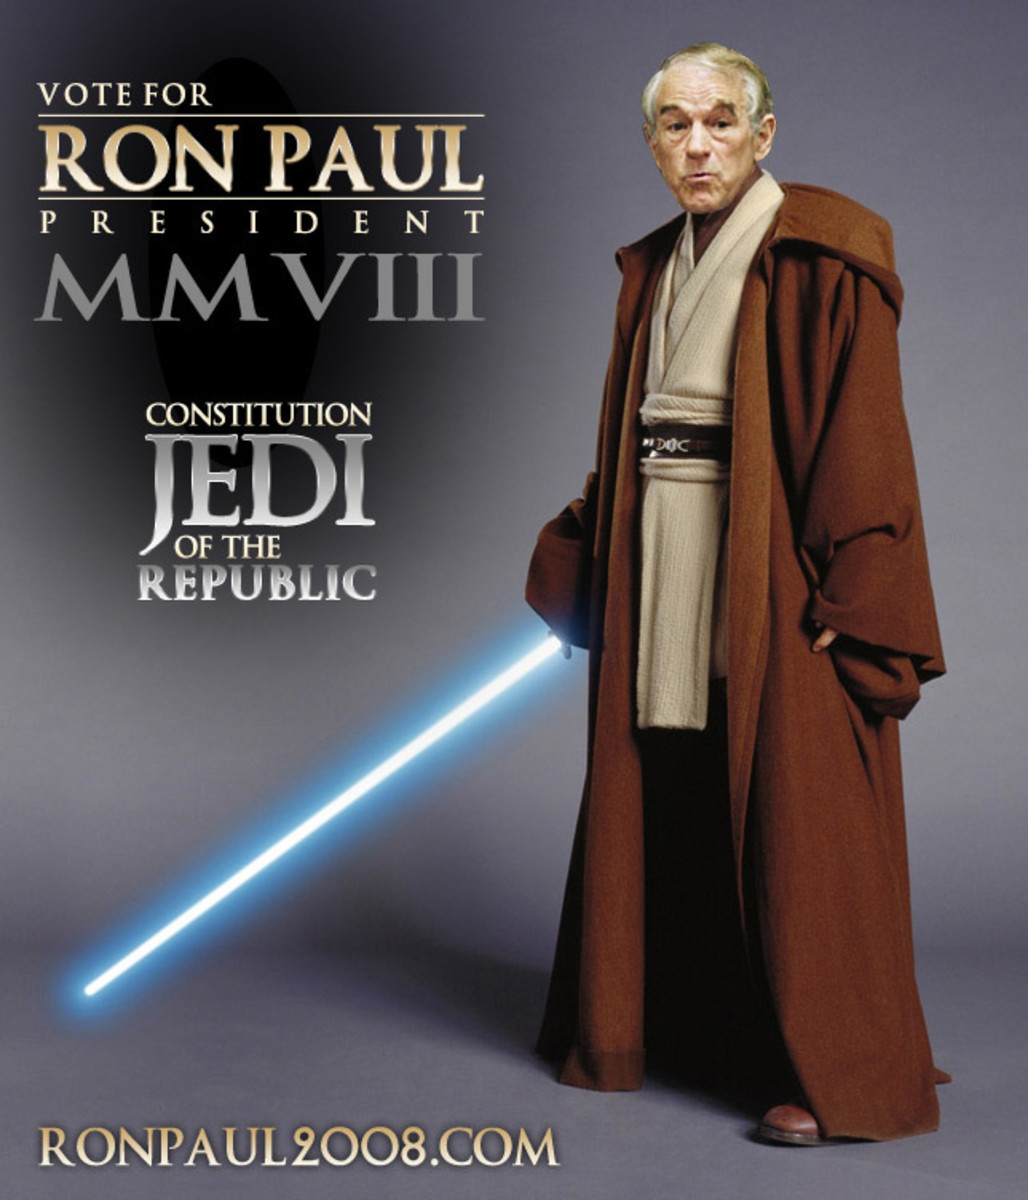 Ron Paul is an advocate of minimal market interference by the government